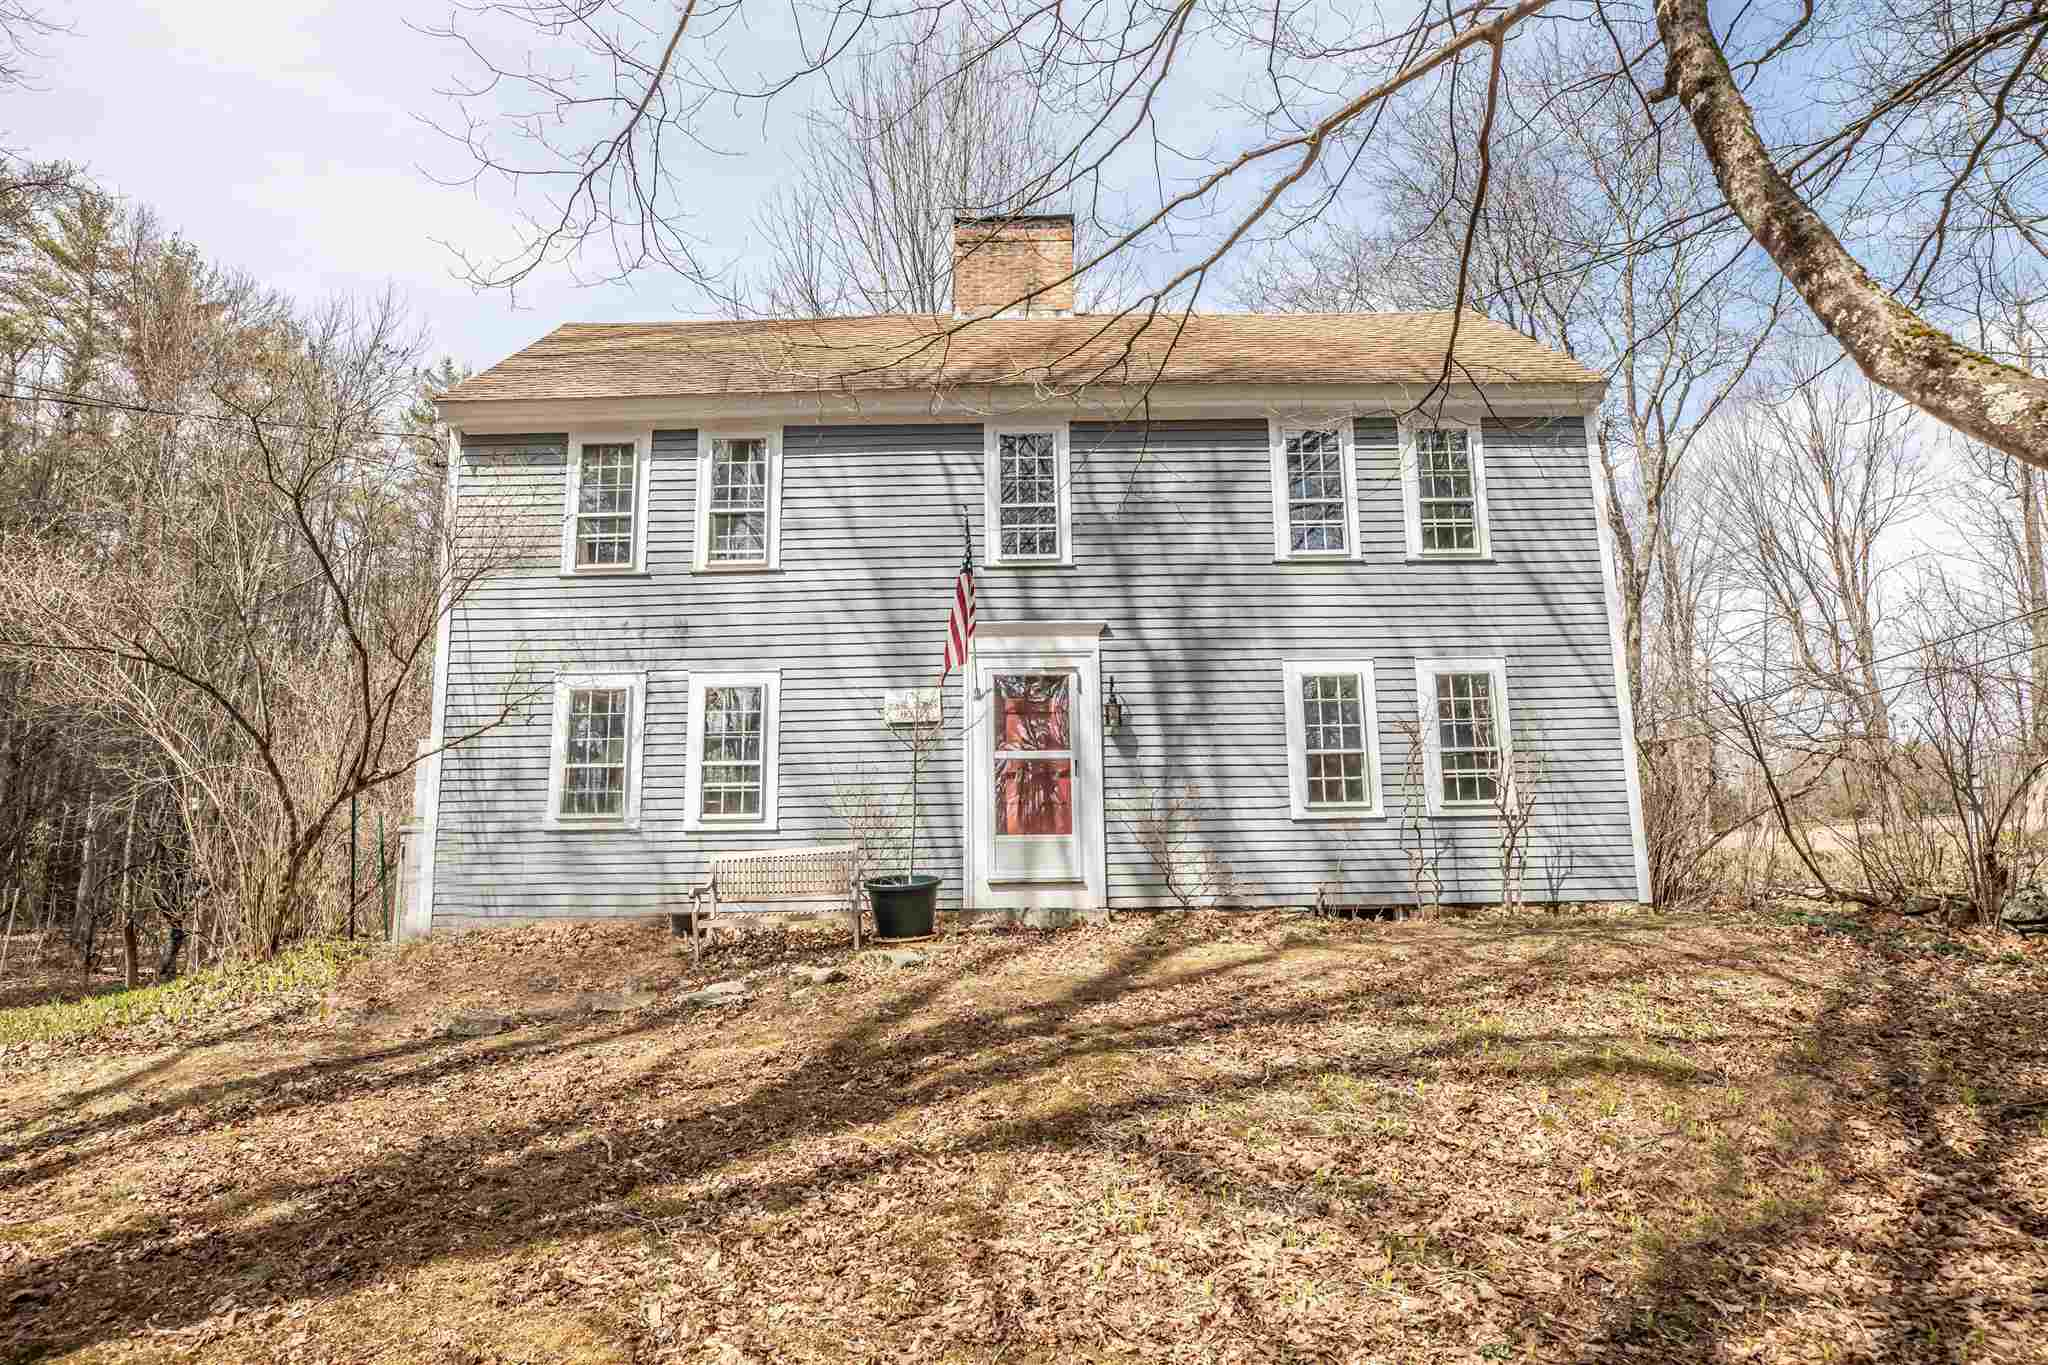 Photo of 598 Red House Road Francestown NH 03043